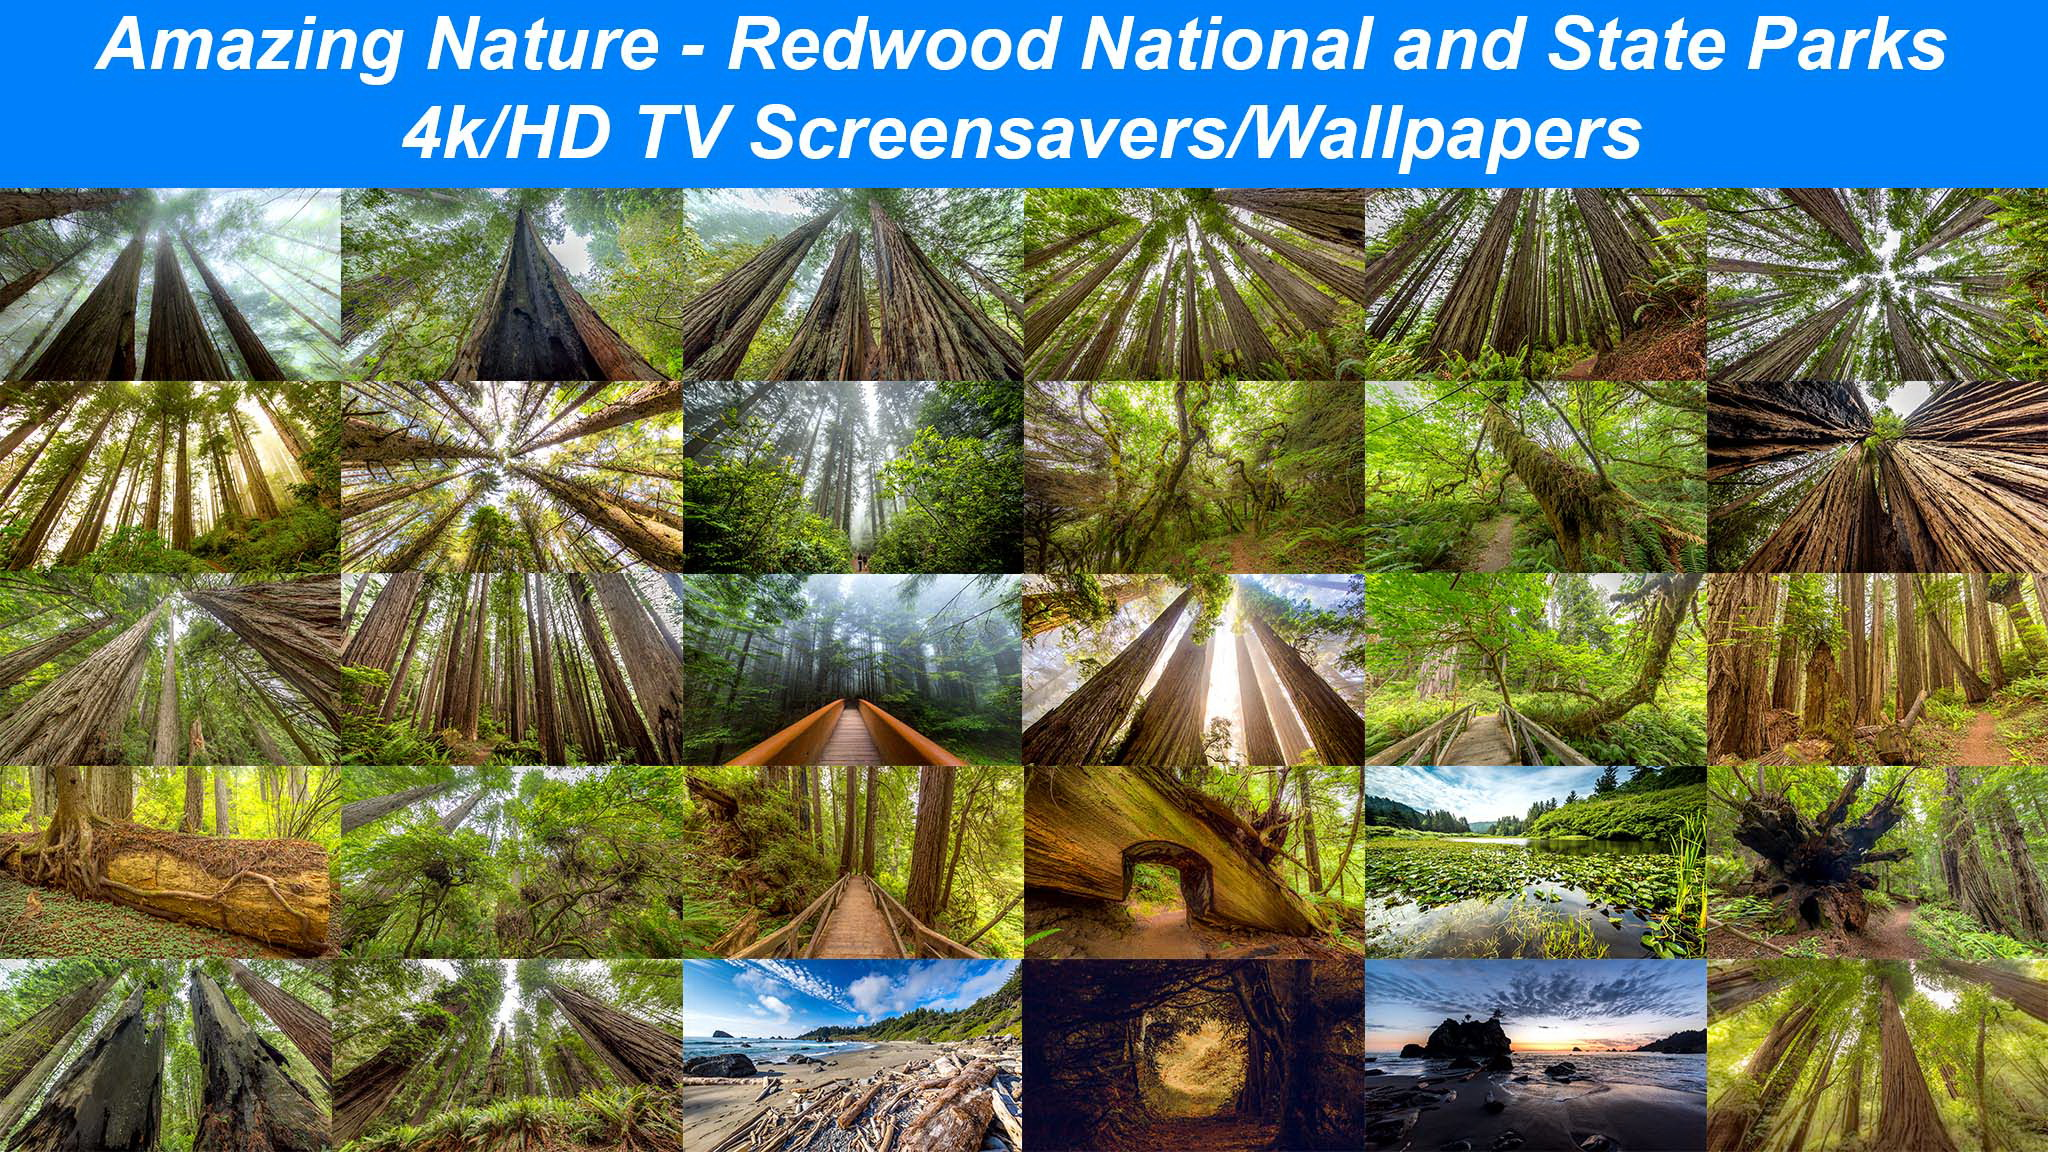 Amazing Nature Redwood National and State Parks 1 4KHD 2048x1152